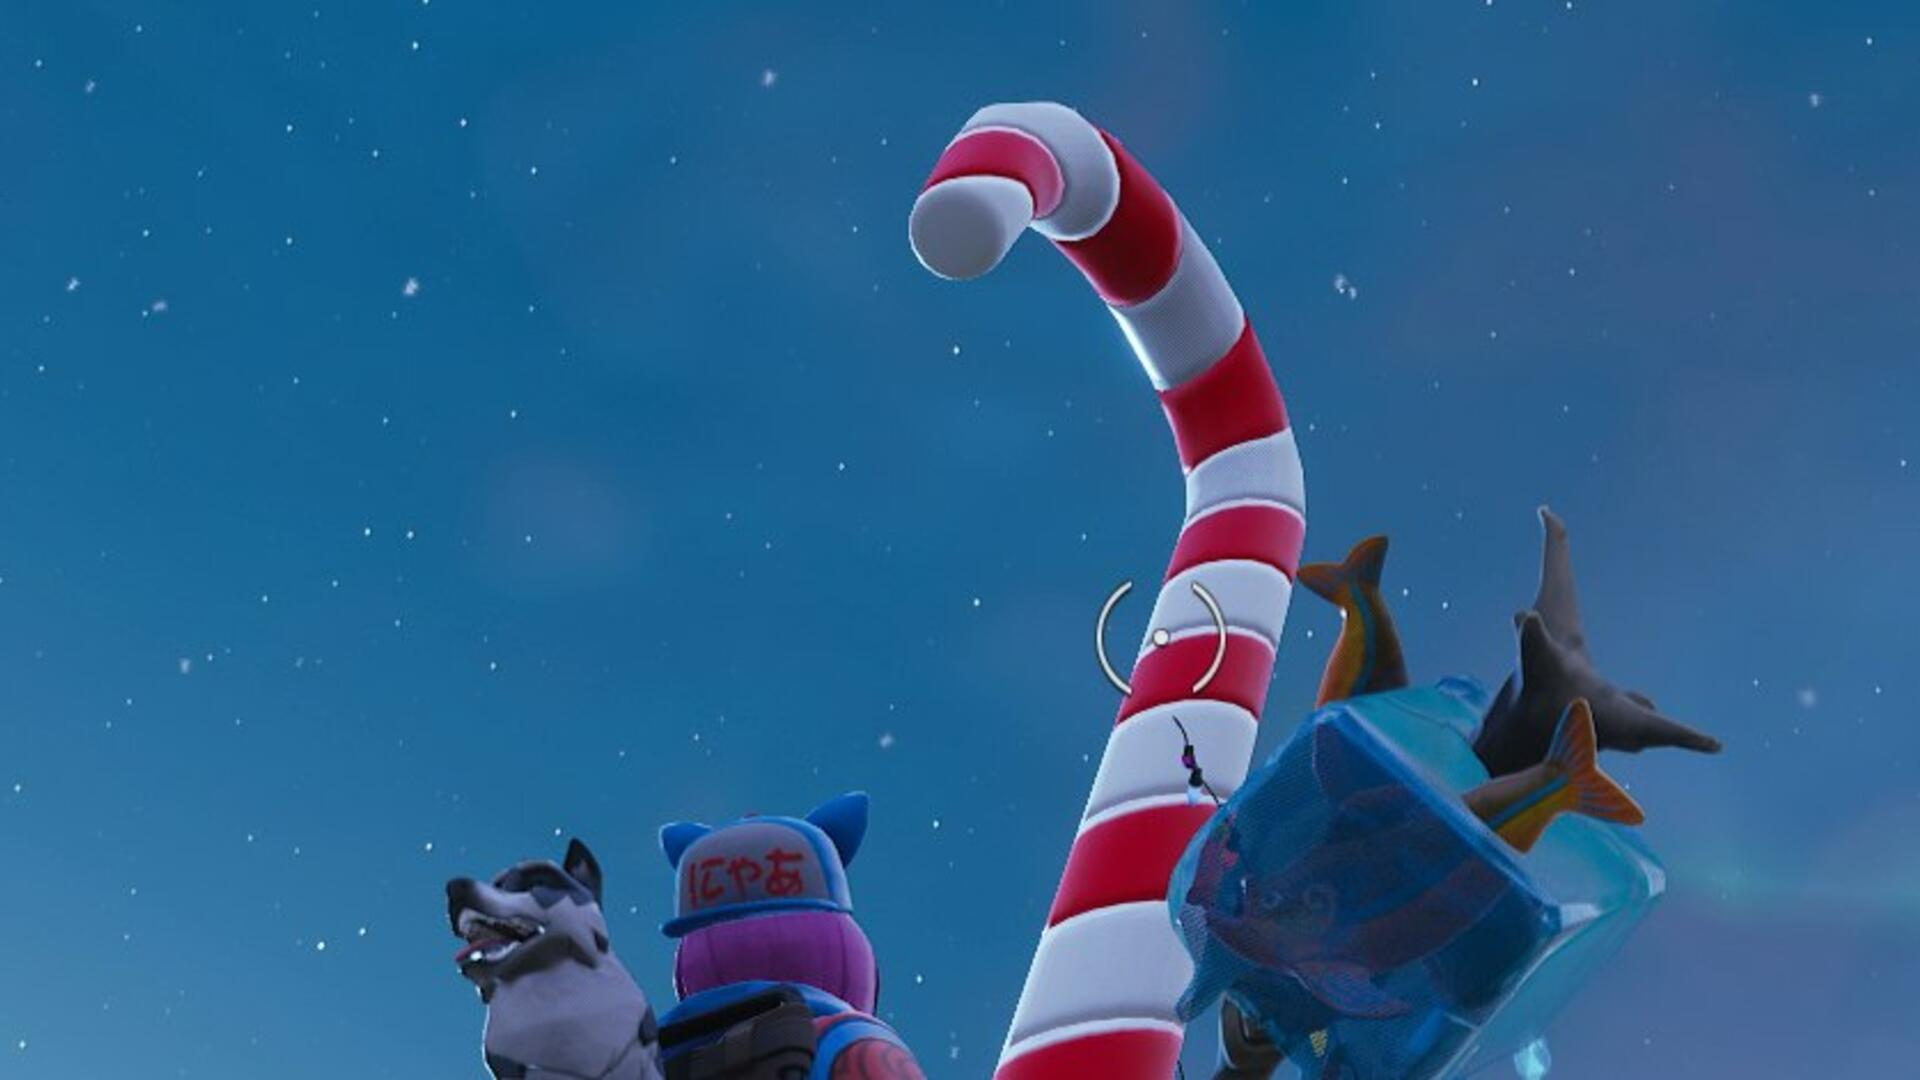 Fortnite Candy Cane Locations - Where to Find All the Giant Candy Cane Locations on the Fortnite Map